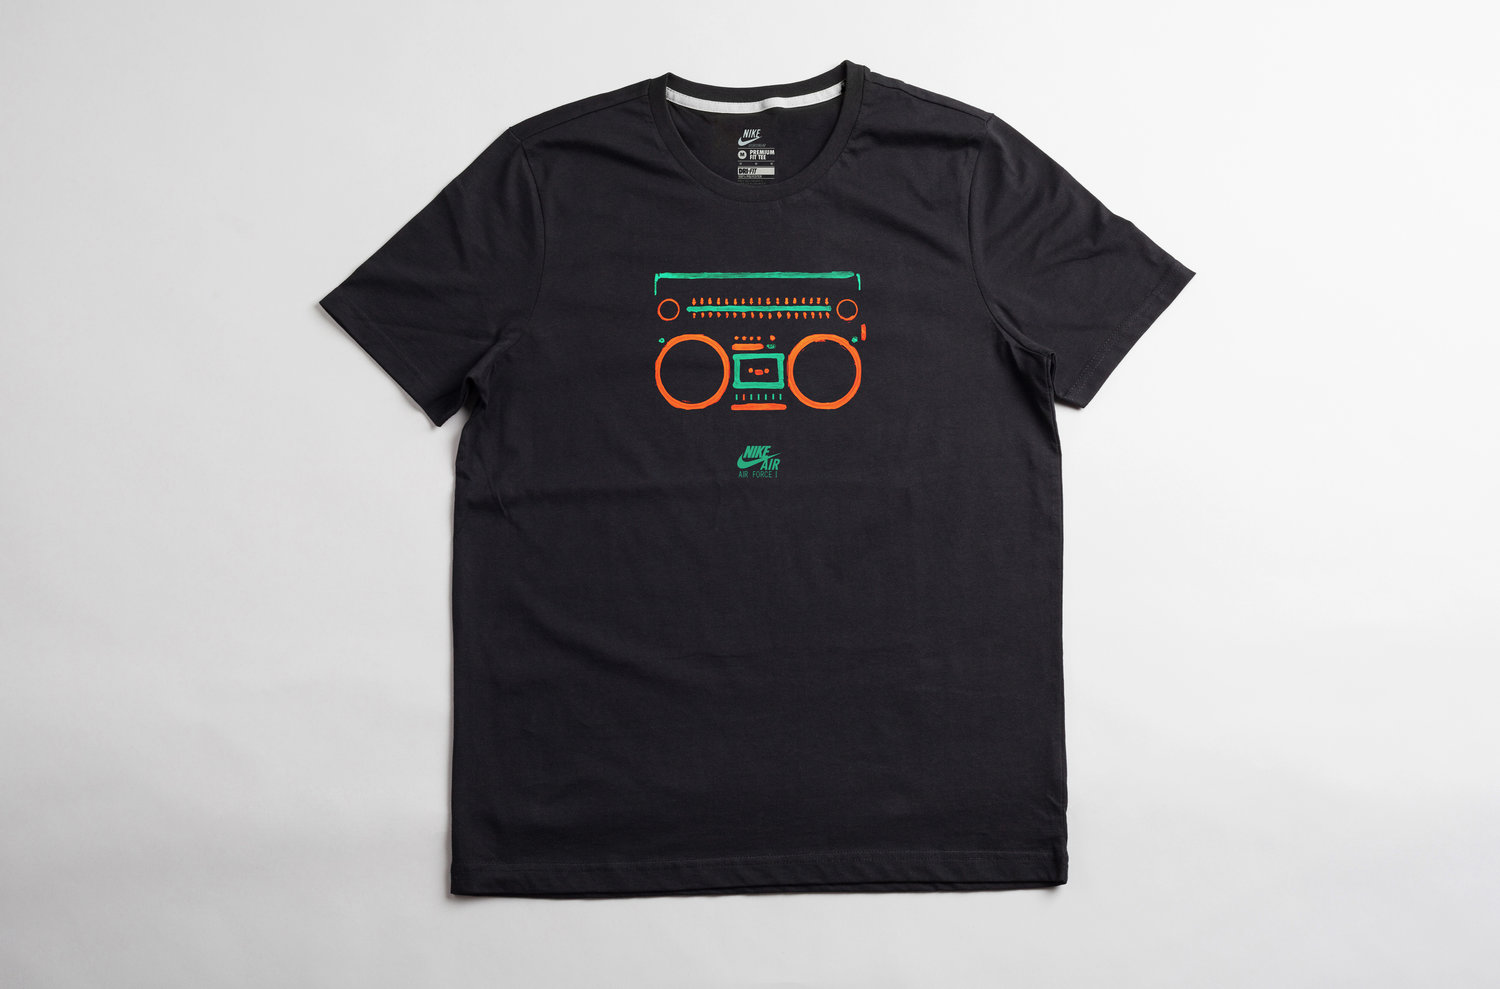 Nike Air Force 1 Boombox T Shirt Antonio Brasko Brasko Design Studio